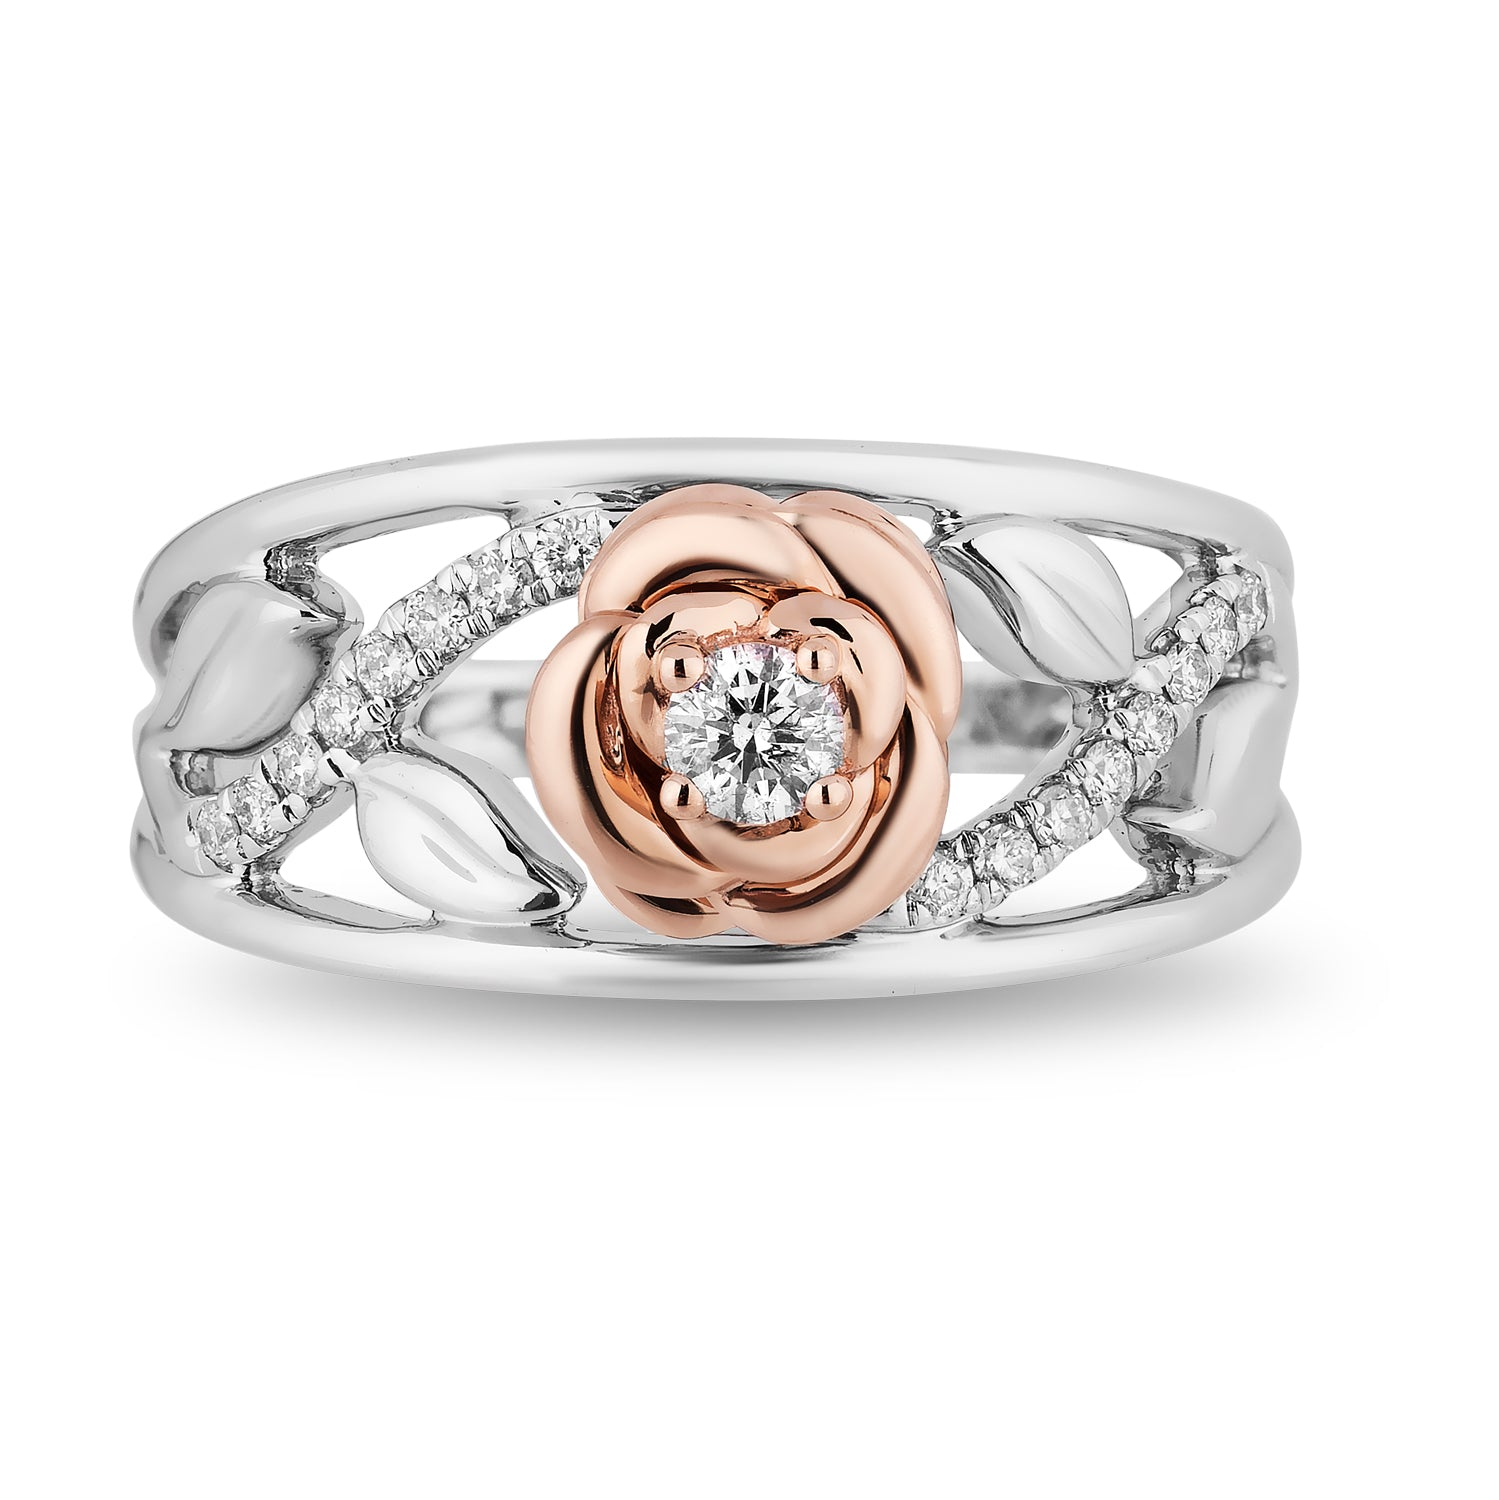 enchanted_disney-belle_rose_ring-10k_rose_gold_and_sterling_silver_1/5CTTW_2